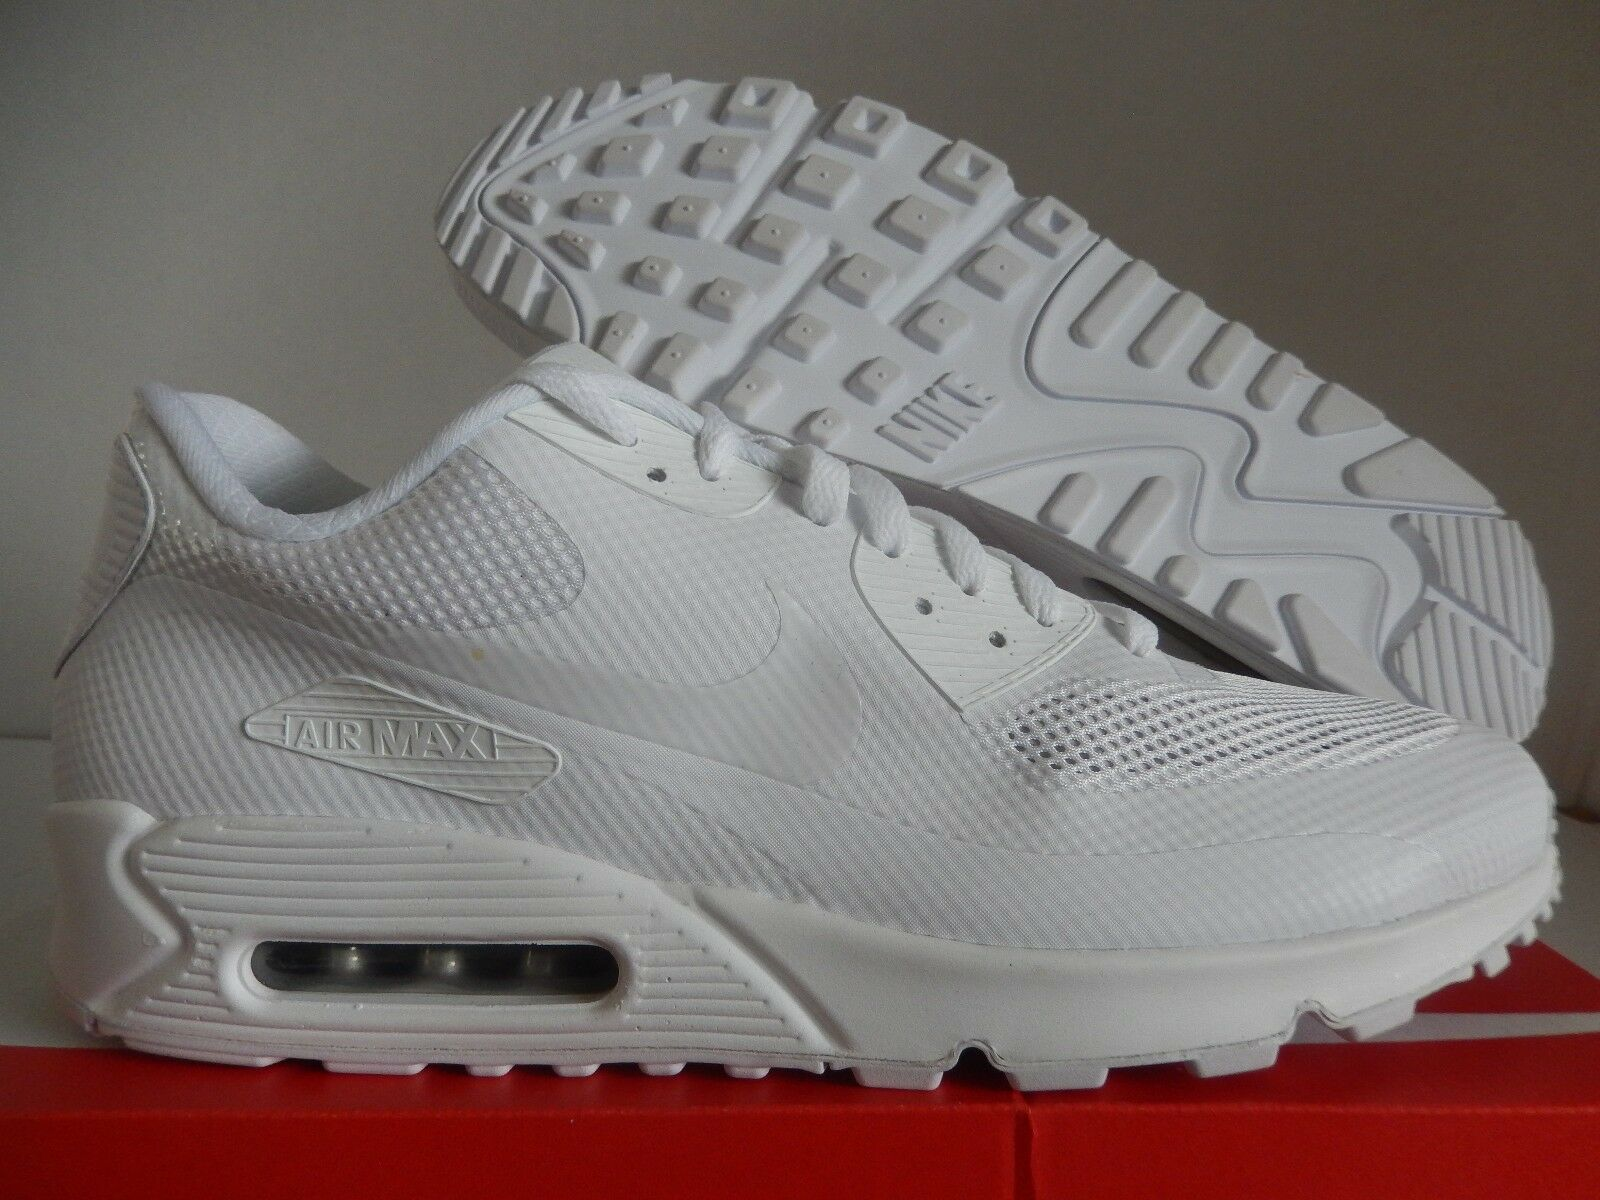 5178cedece ... purchase nike air max 90 hyp hyperfuse premium id all white sz 13  653603 991 191e2